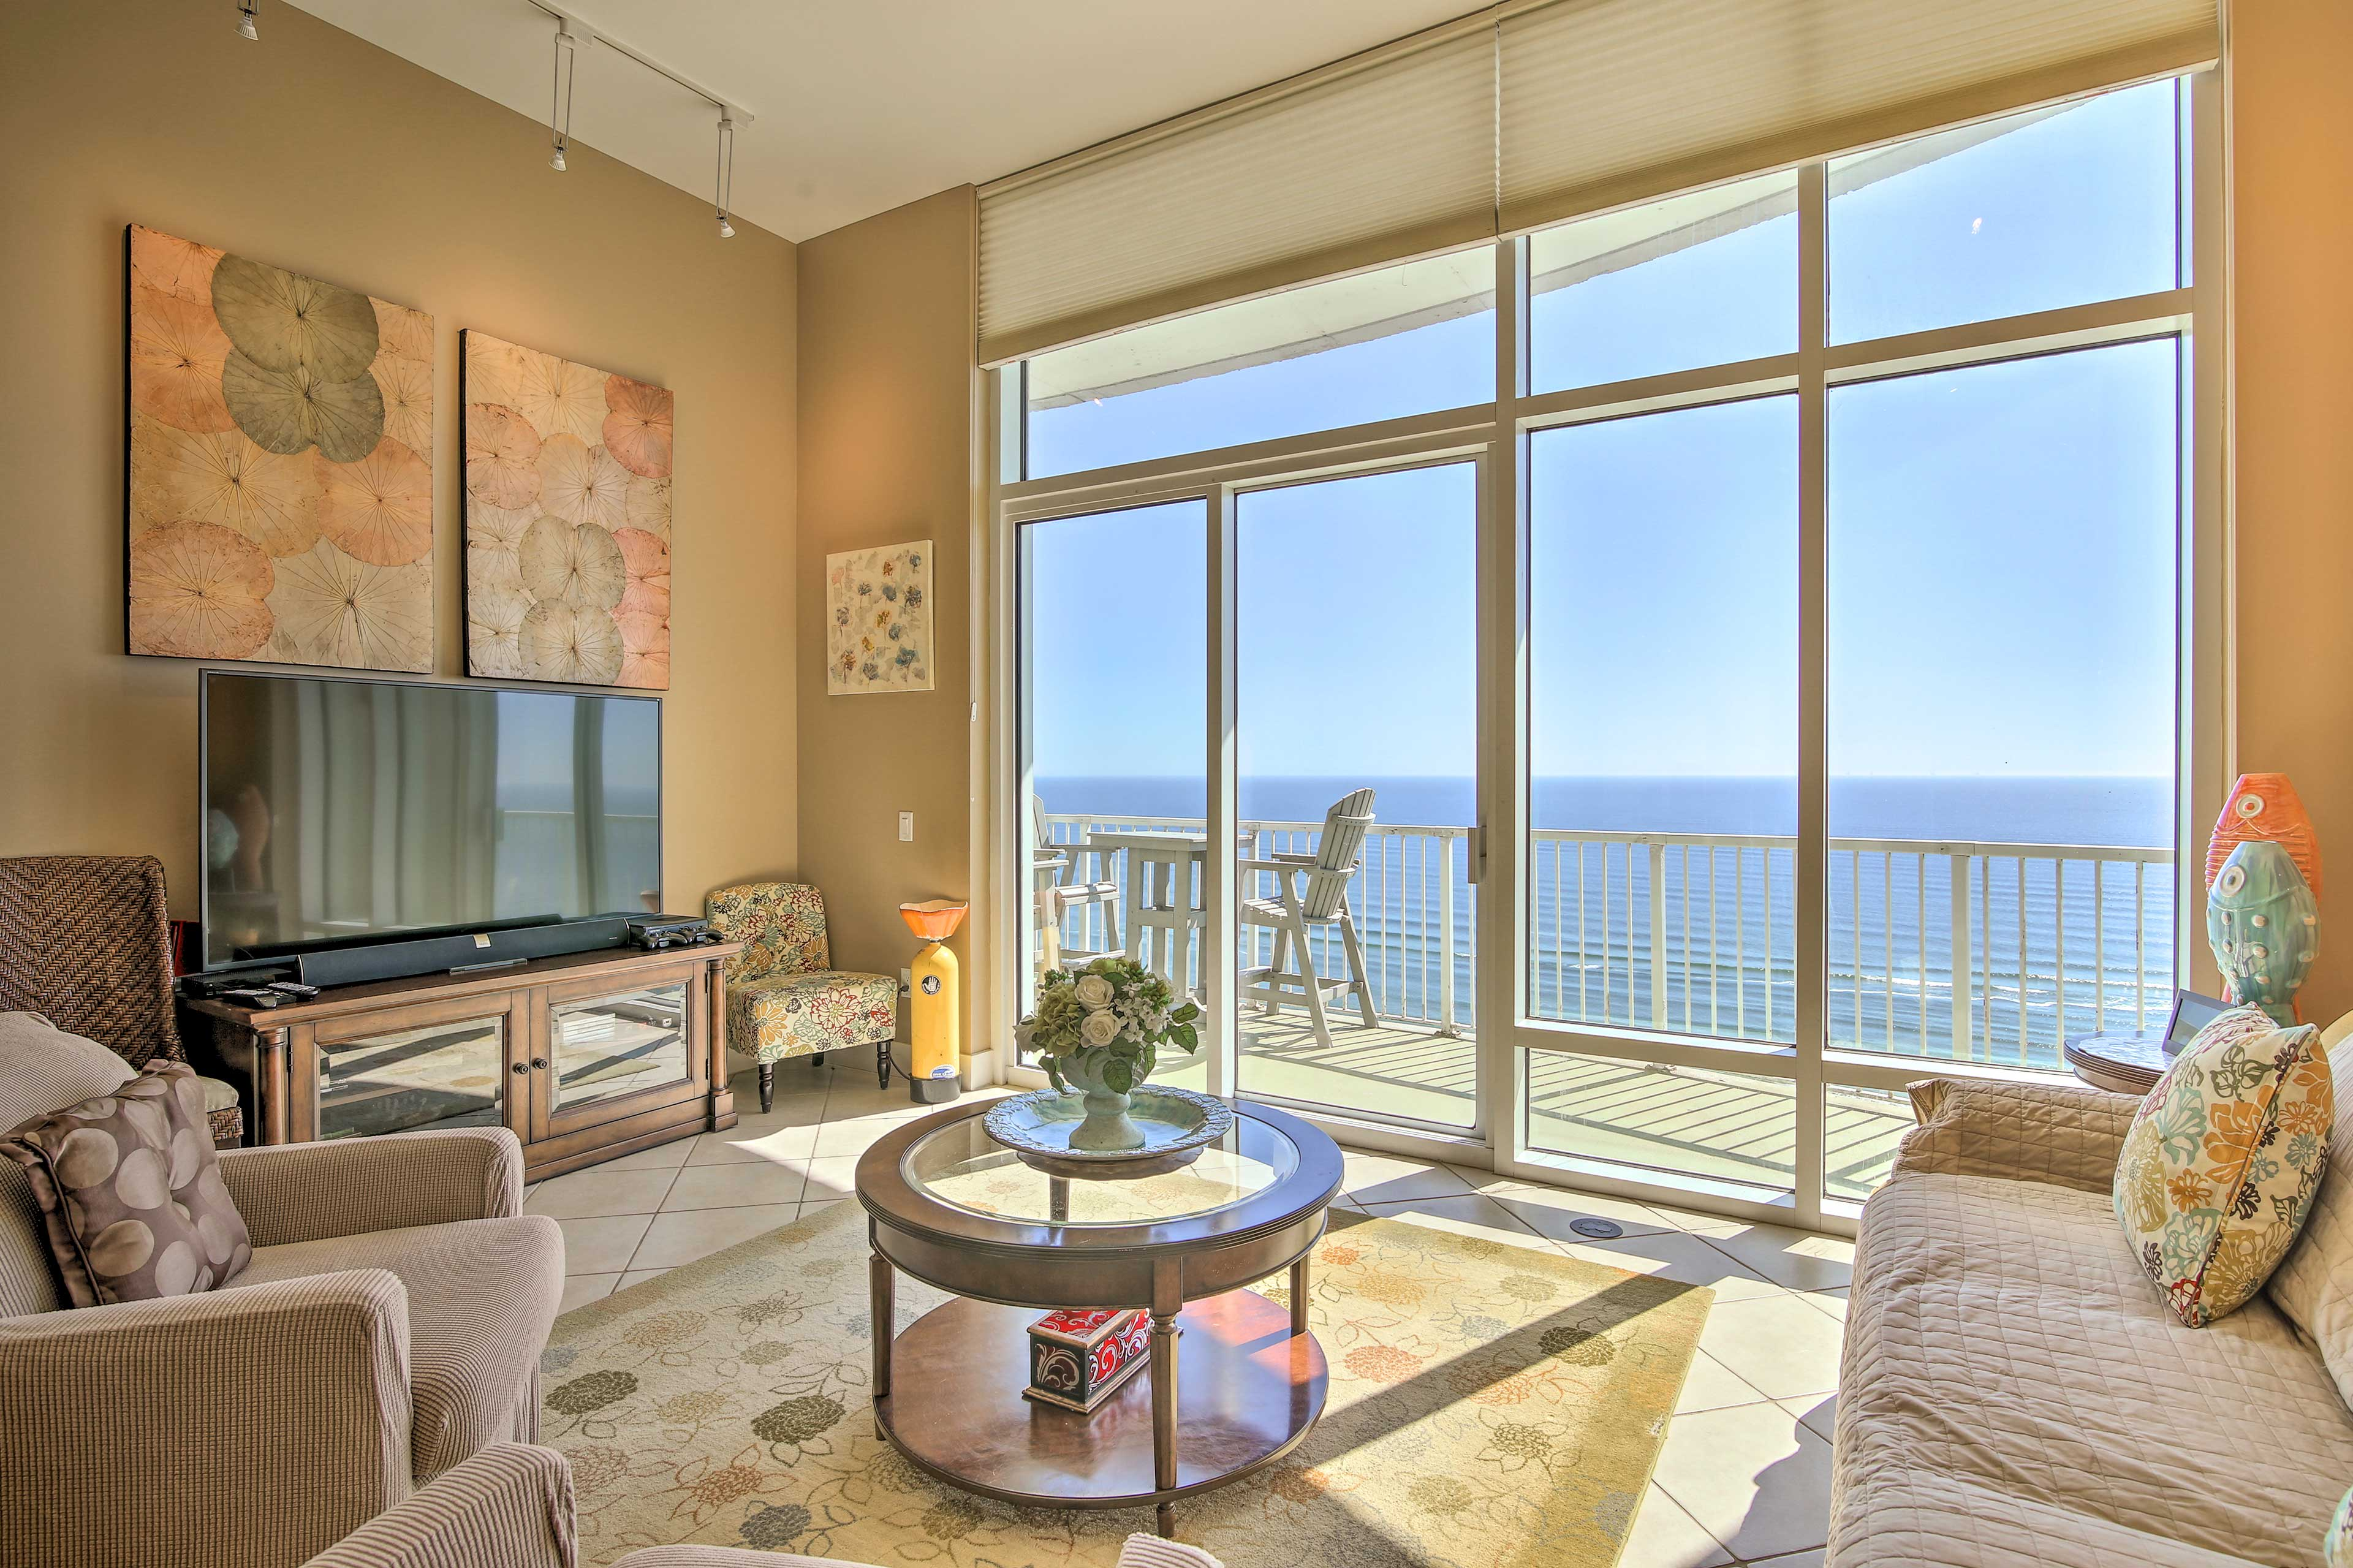 Prepare yourself for the amazing views at this 28th-floor condo!